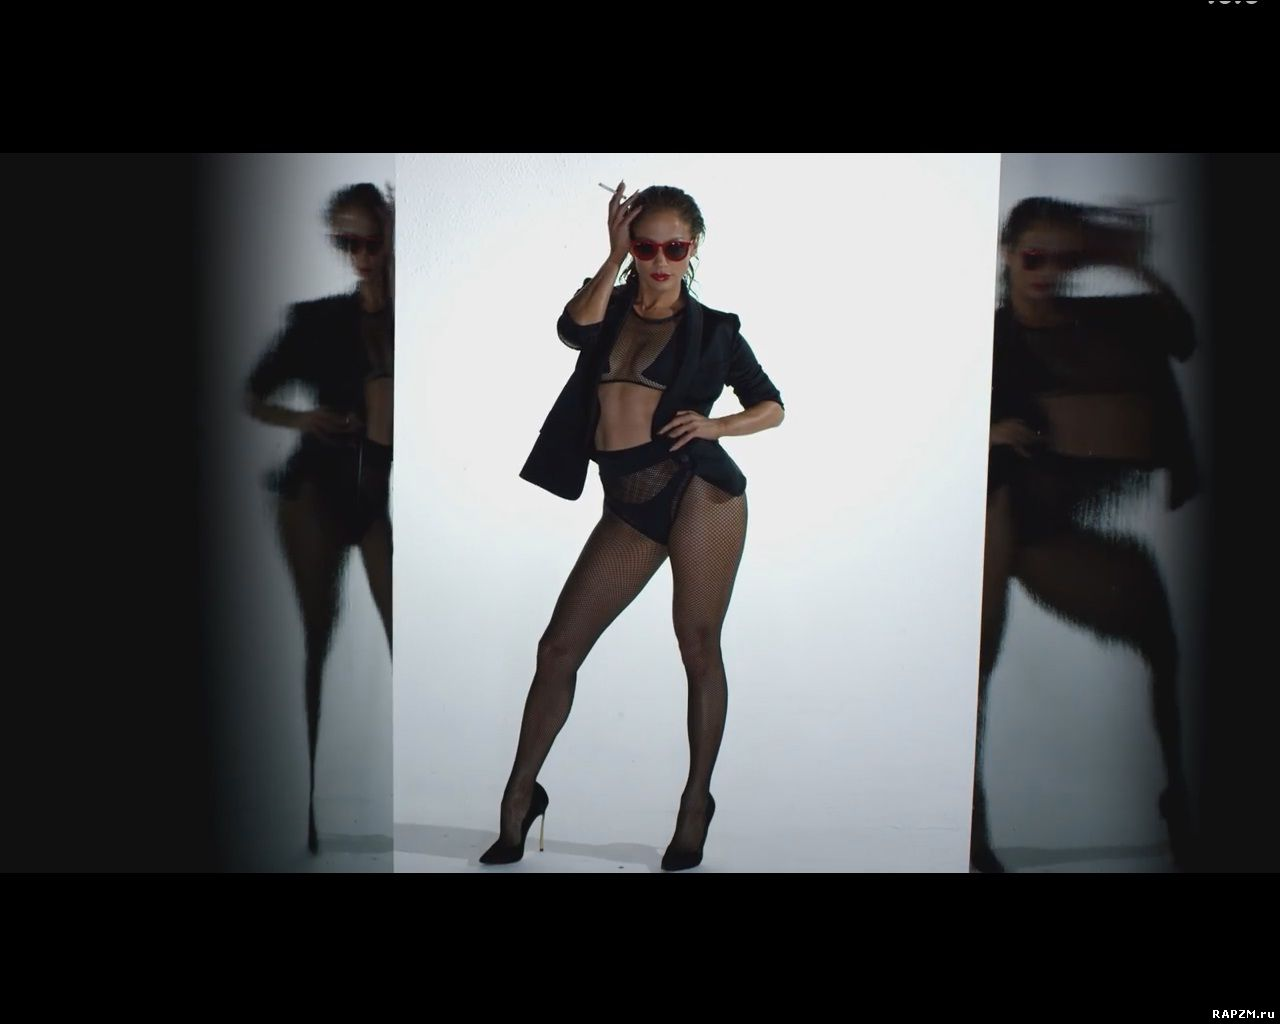 Jennifer Lopez ft. Iggy Azalea - Booty video online